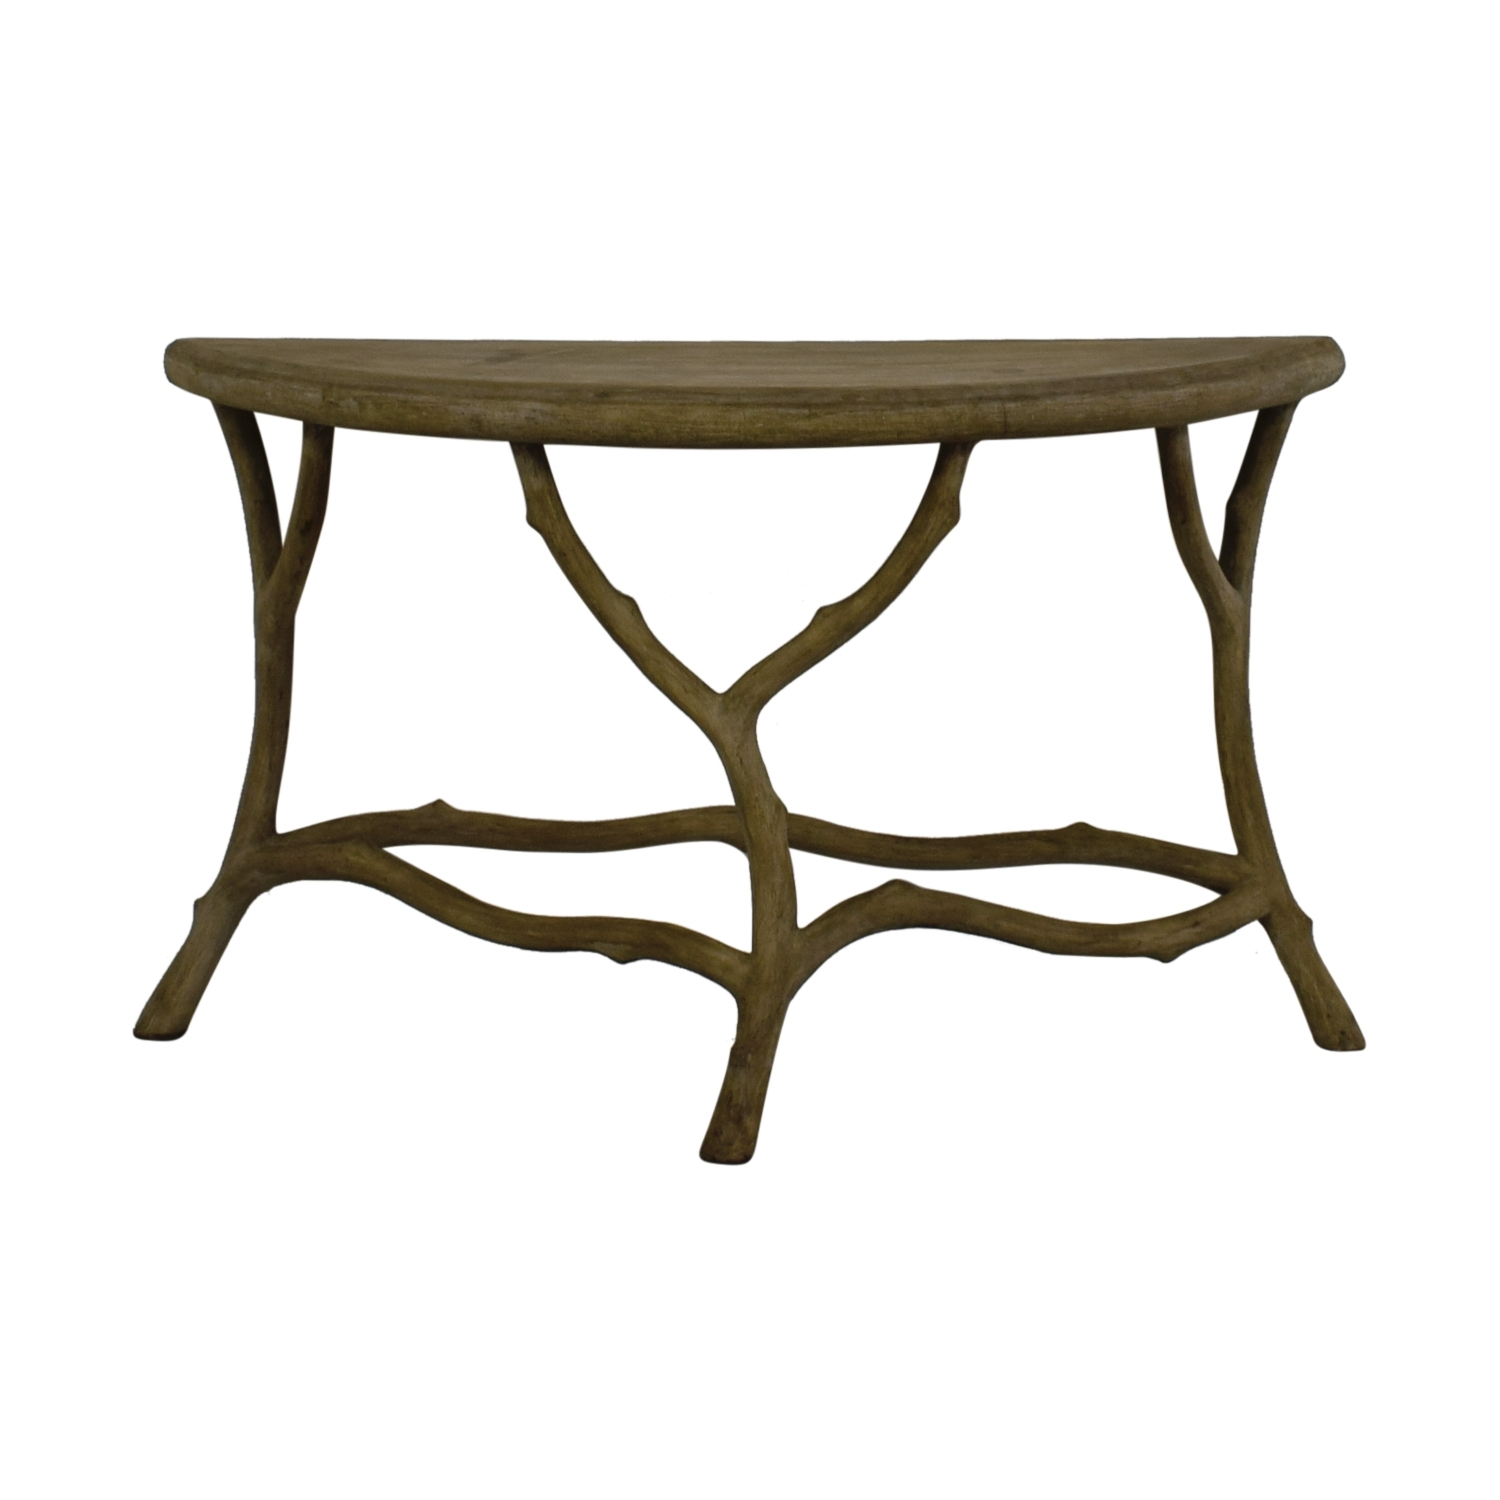 [%Best And Newest Faux Bois Coffee Tables Regarding 90% Off – Horchow Horchow Grey Faux Bois Half Table / Tables|90% Off – Horchow Horchow Grey Faux Bois Half Table / Tables Regarding Well Known Faux Bois Coffee Tables%] (View 1 of 20)